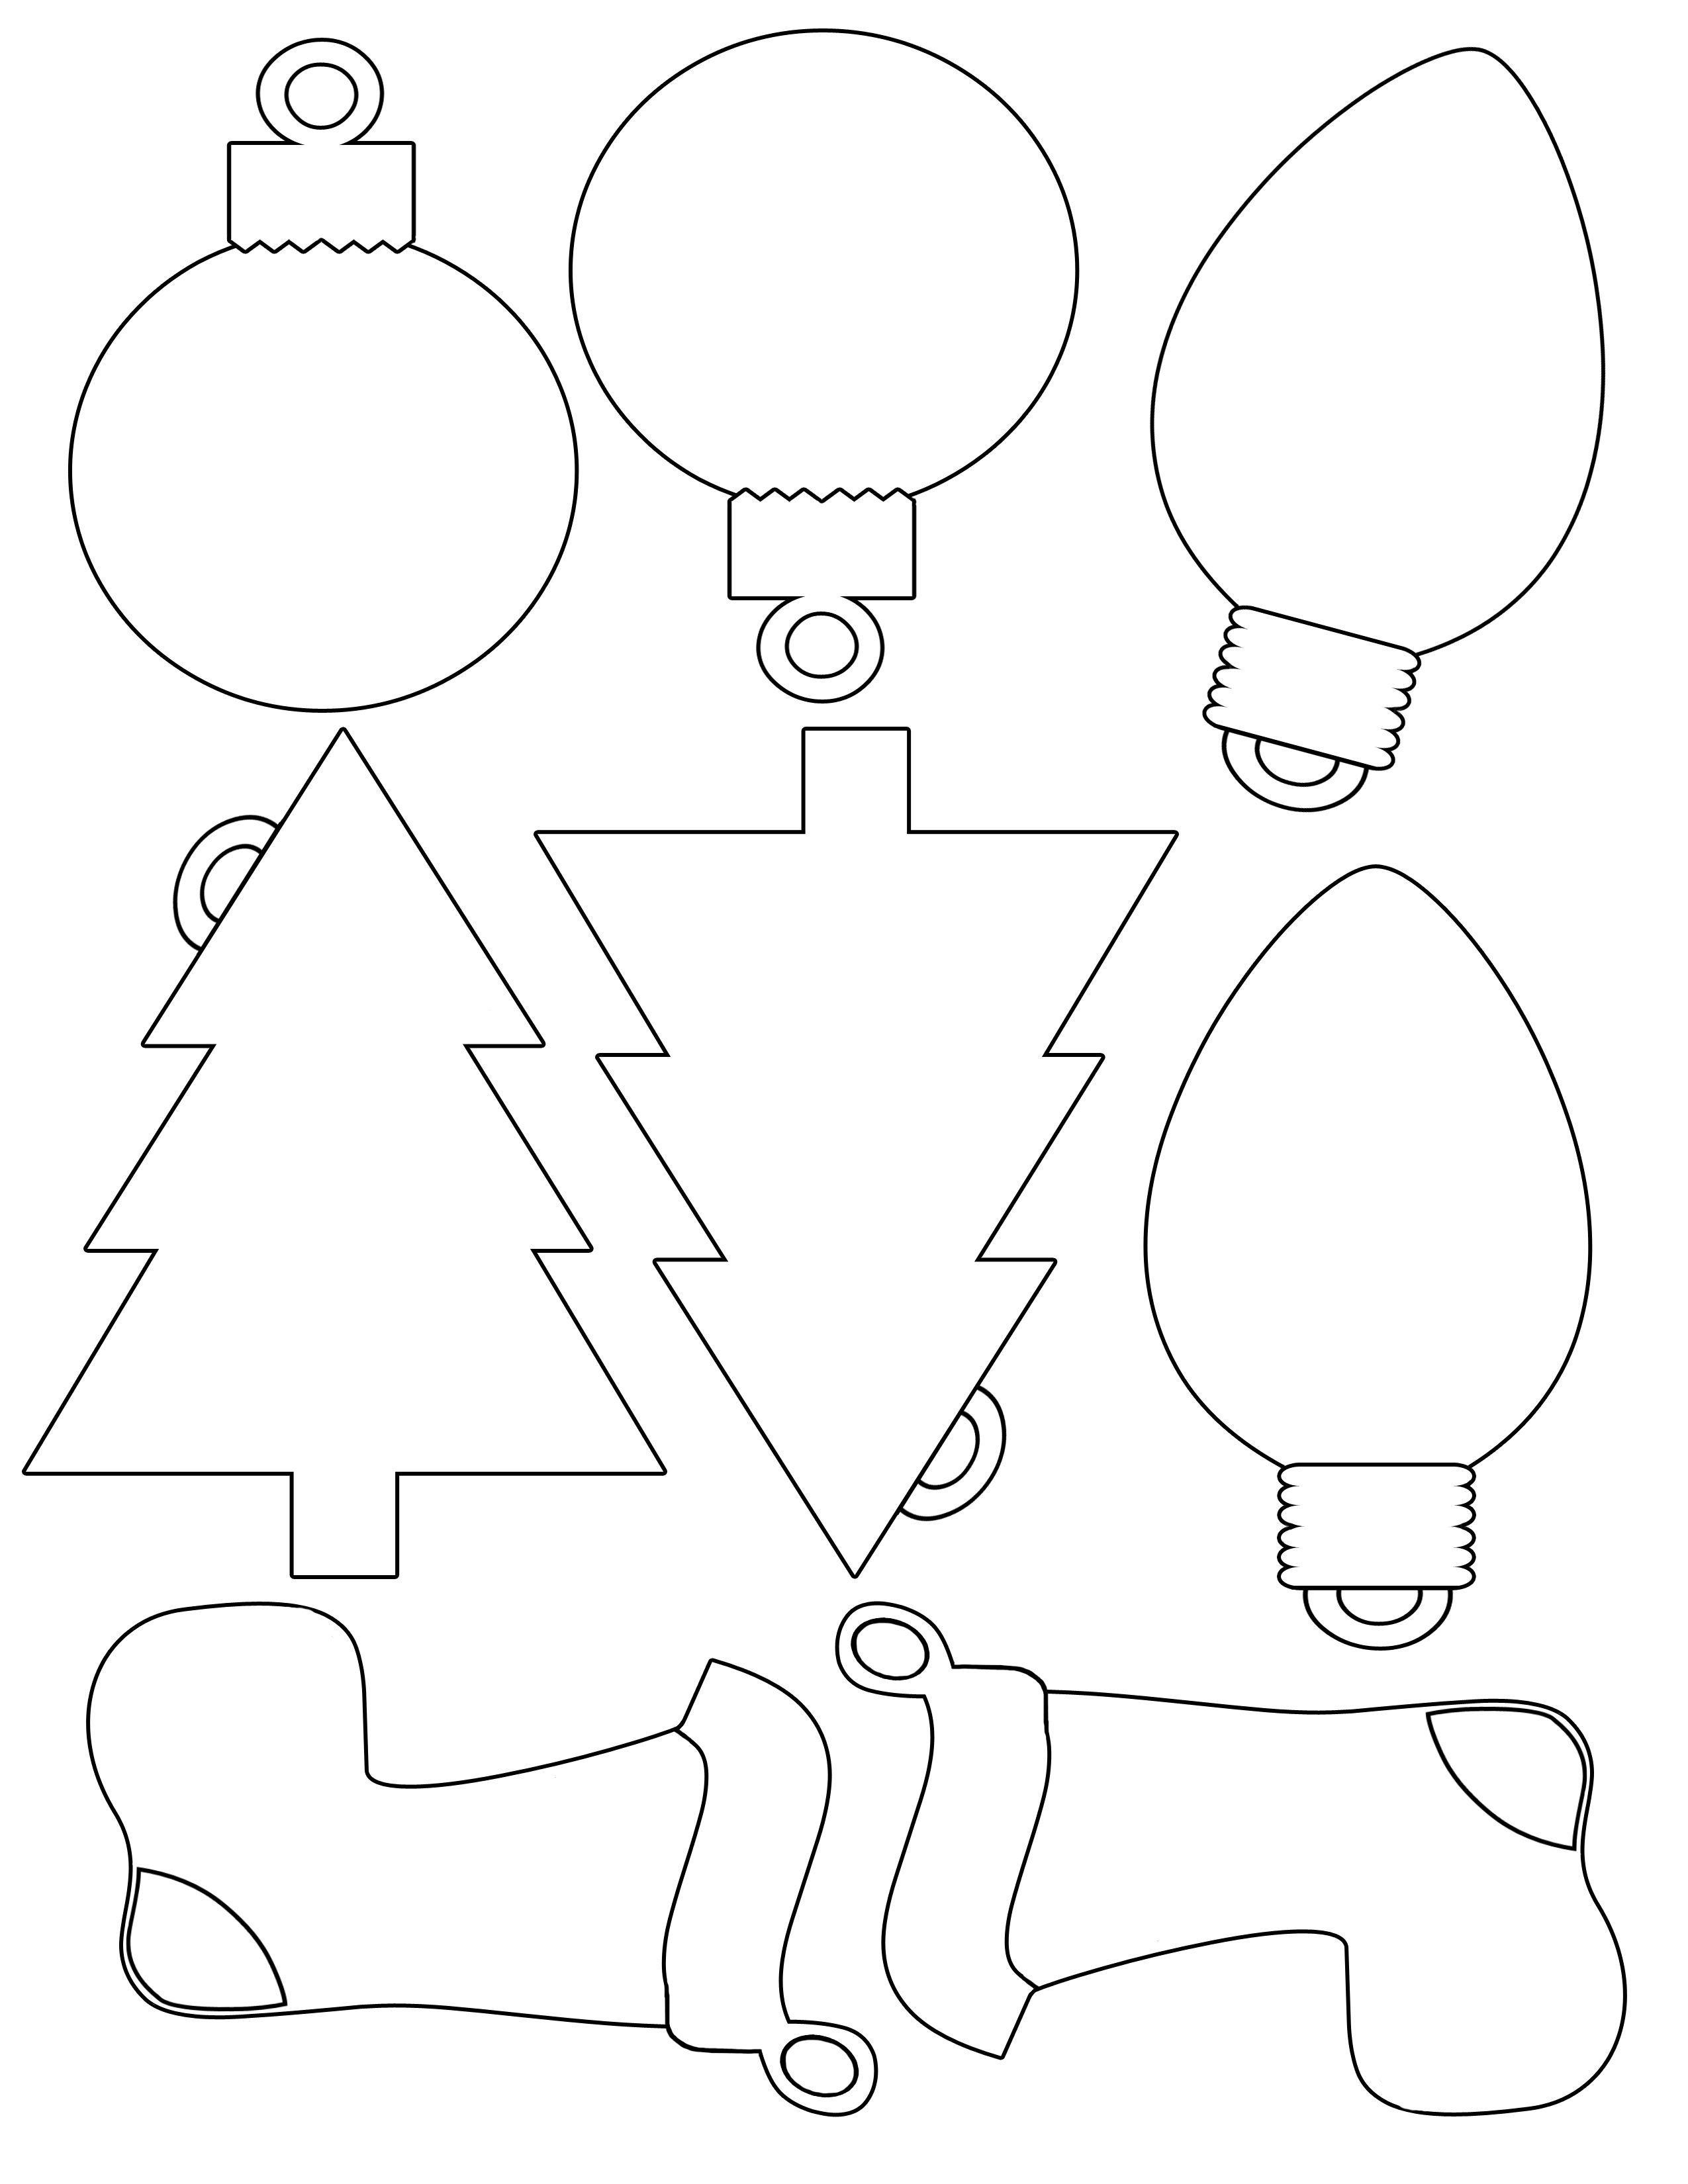 Printable Christmas Envelope |  For Christmas Shapes For Gift - Free Printable Christmas Cutouts